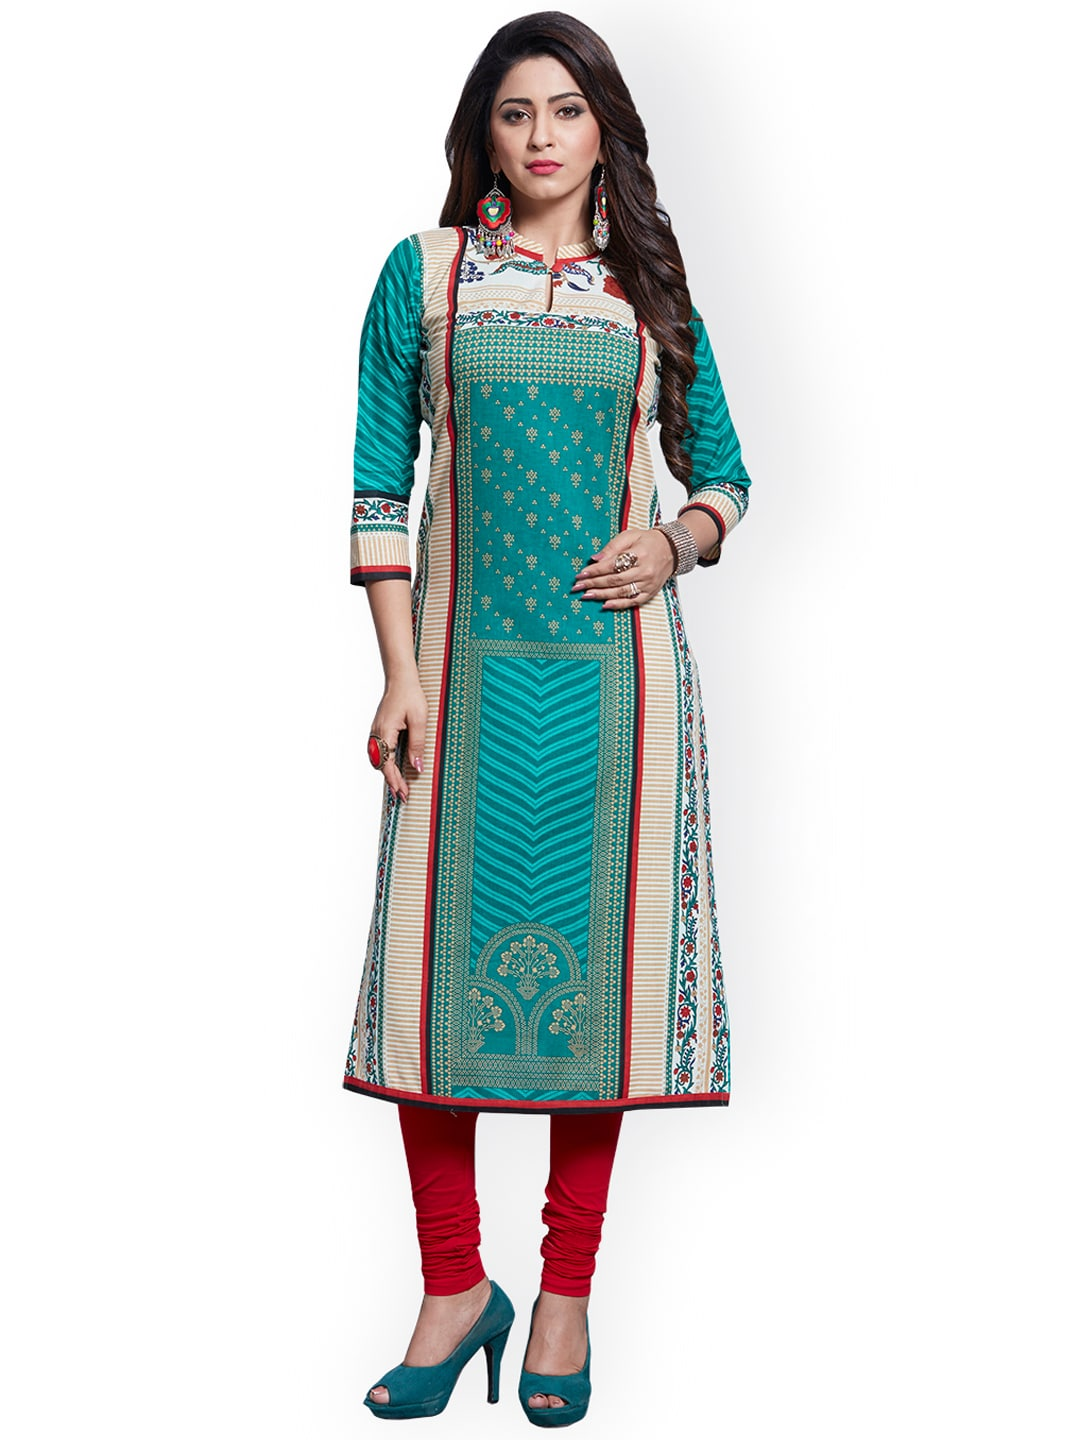 Ishin Blue Pure Cotton Unstitched Dress Material image